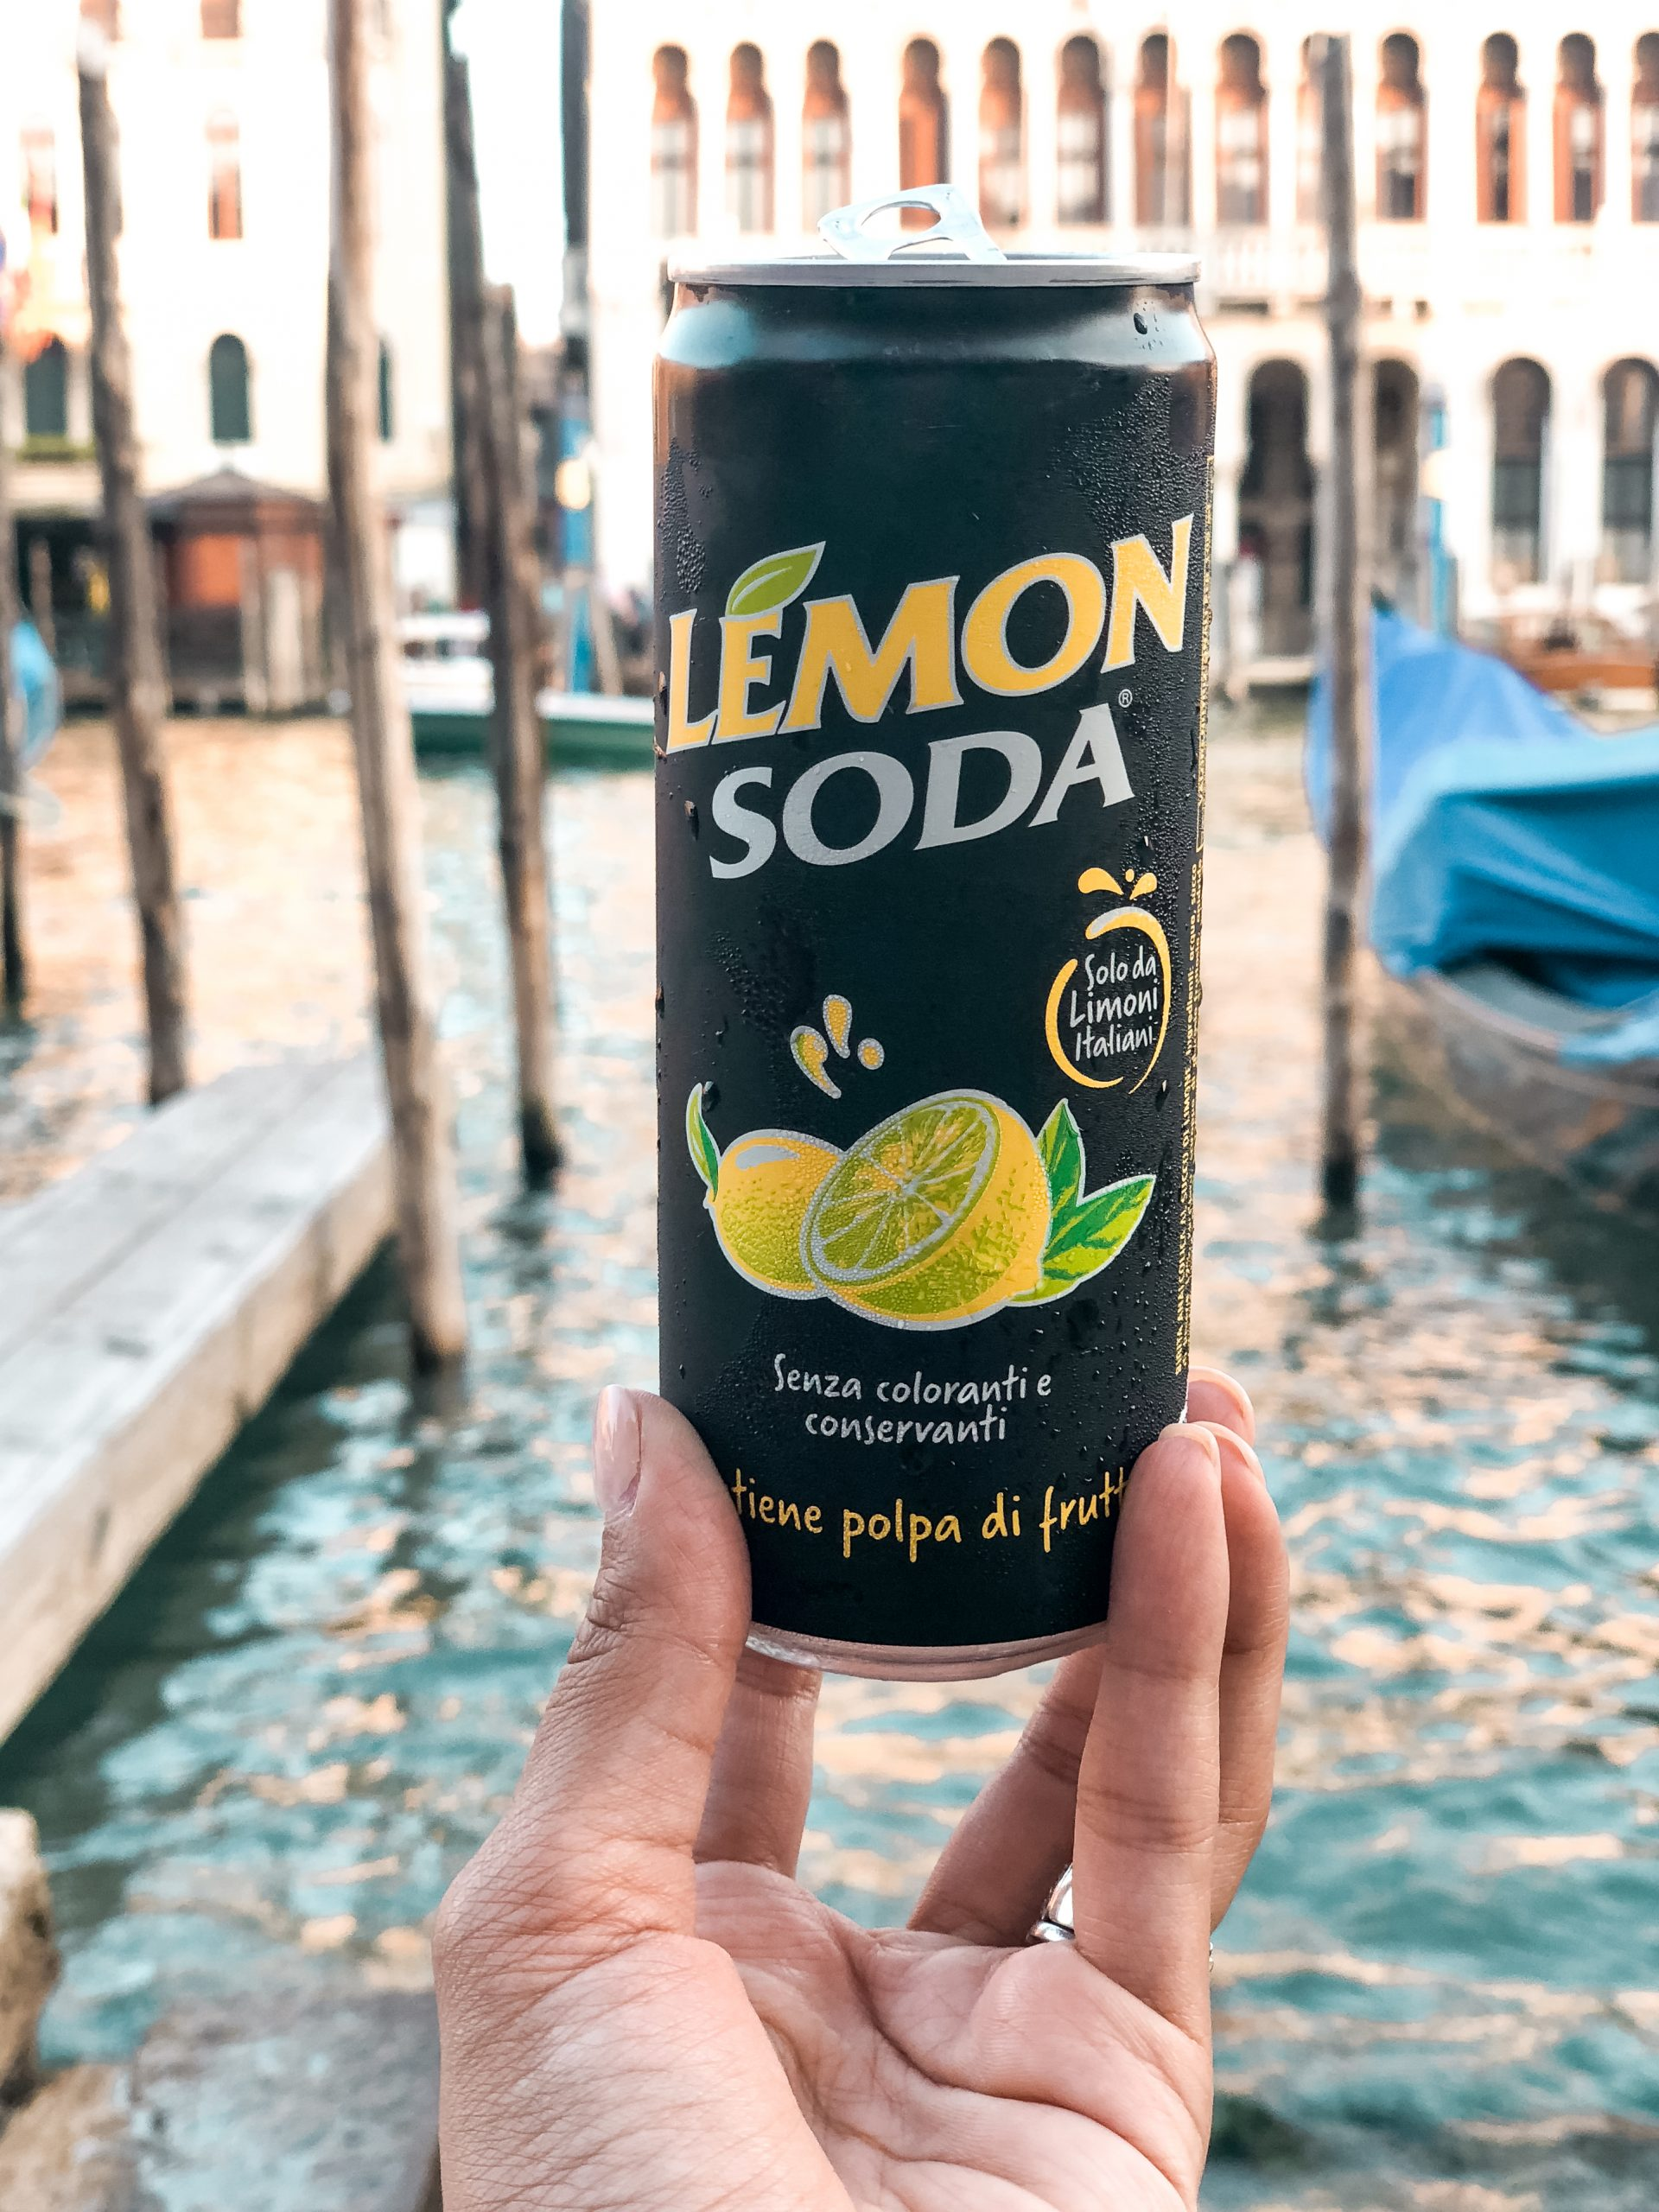 a can of lemon soda with water in the background